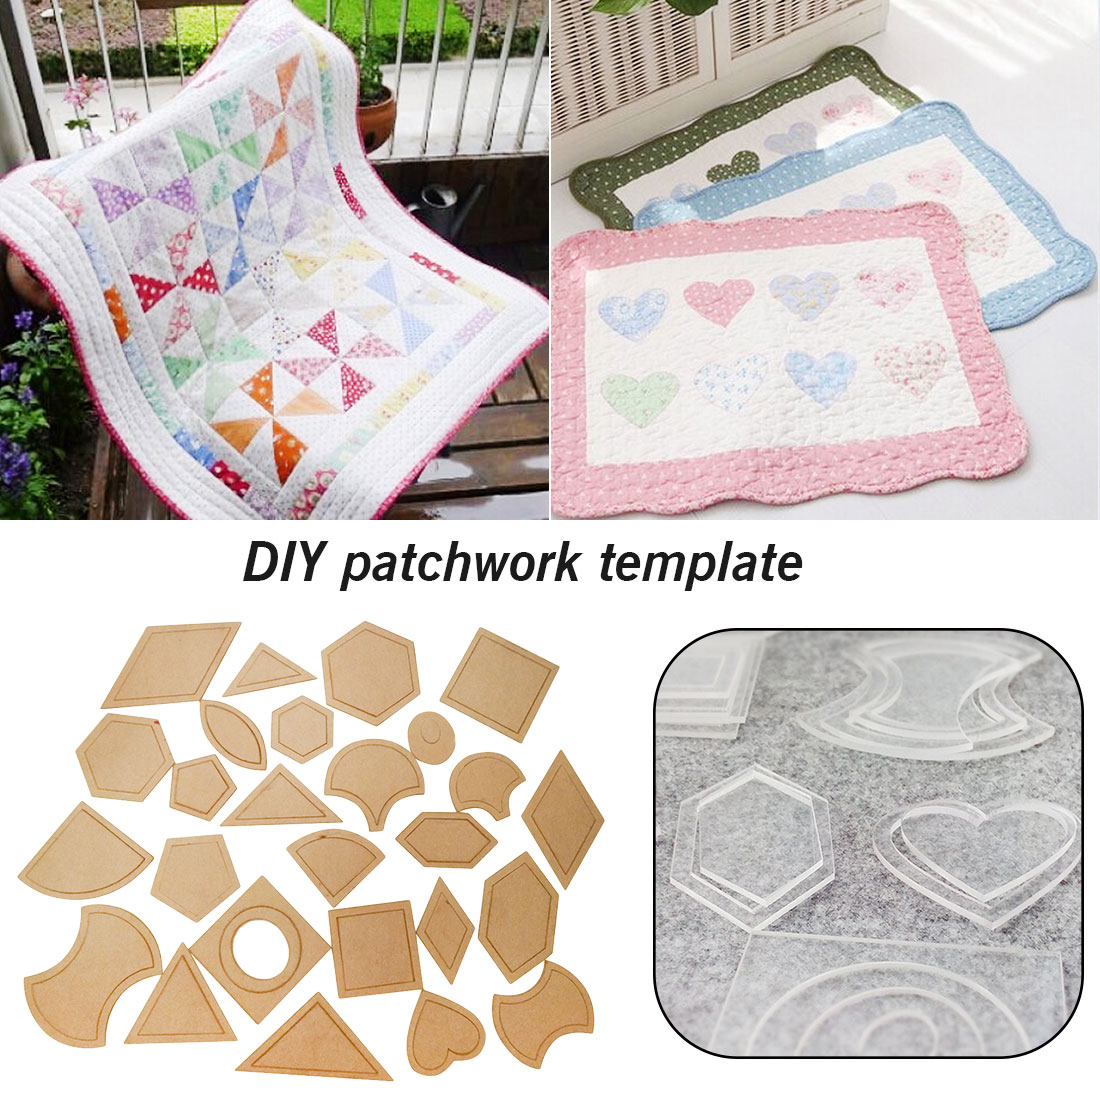 54pcs <font><b>Patchwork</b></font> Template DIY Handmade Craft Sewing <font><b>Tool</b></font> Transparent Template Different Shape Pattern Quilter Quilting Supply image